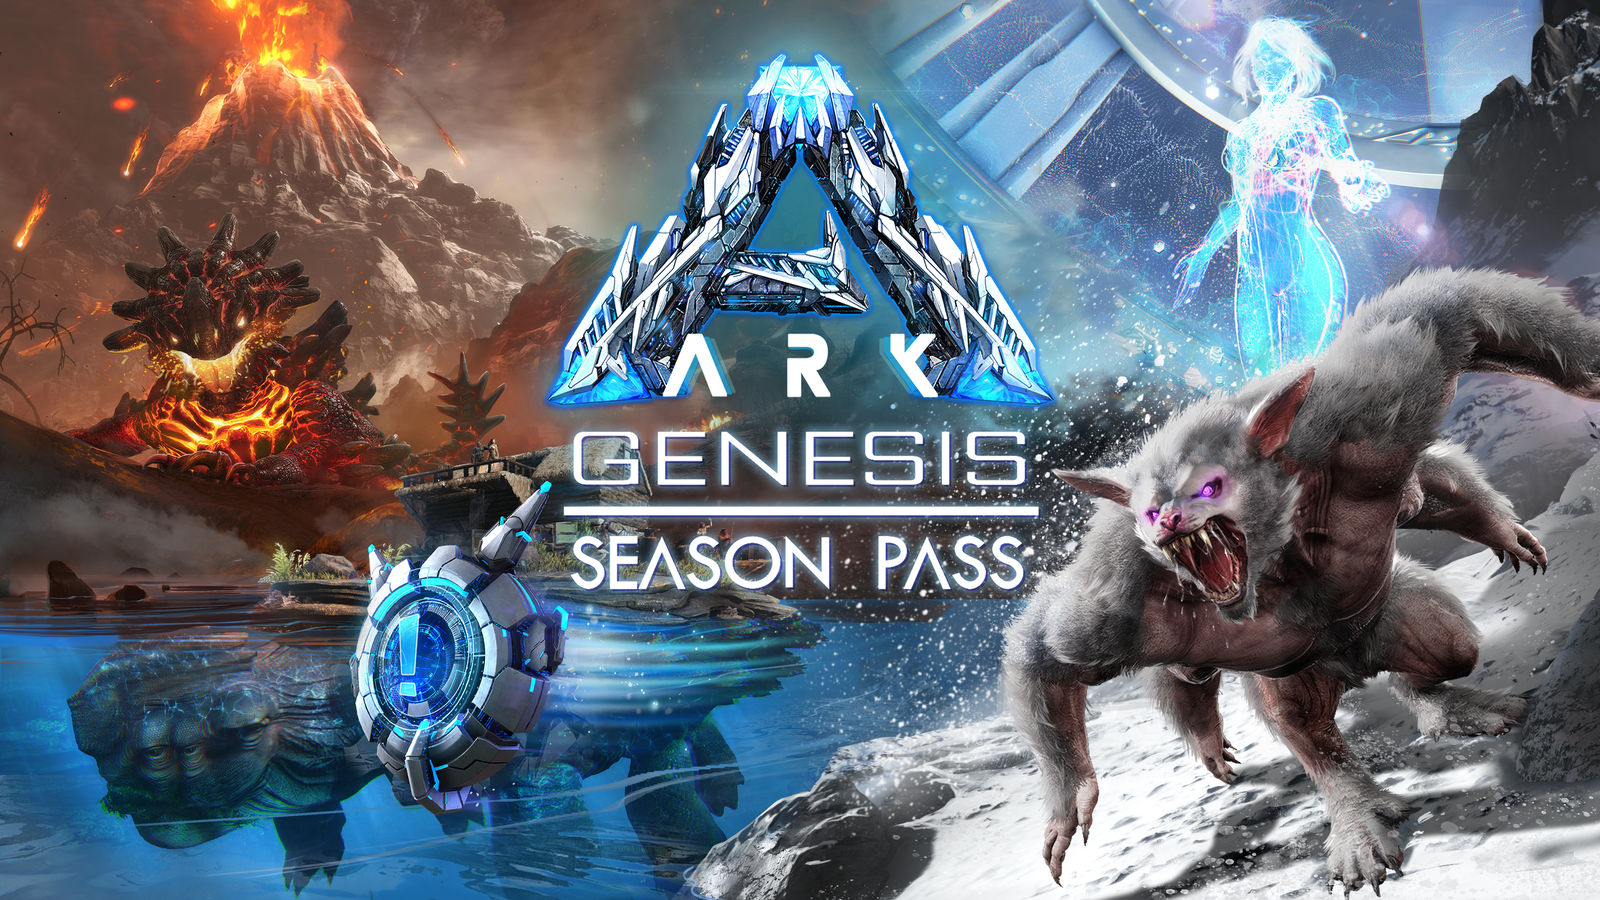 ARK: Genesis Season Pass (Steam) Region Free